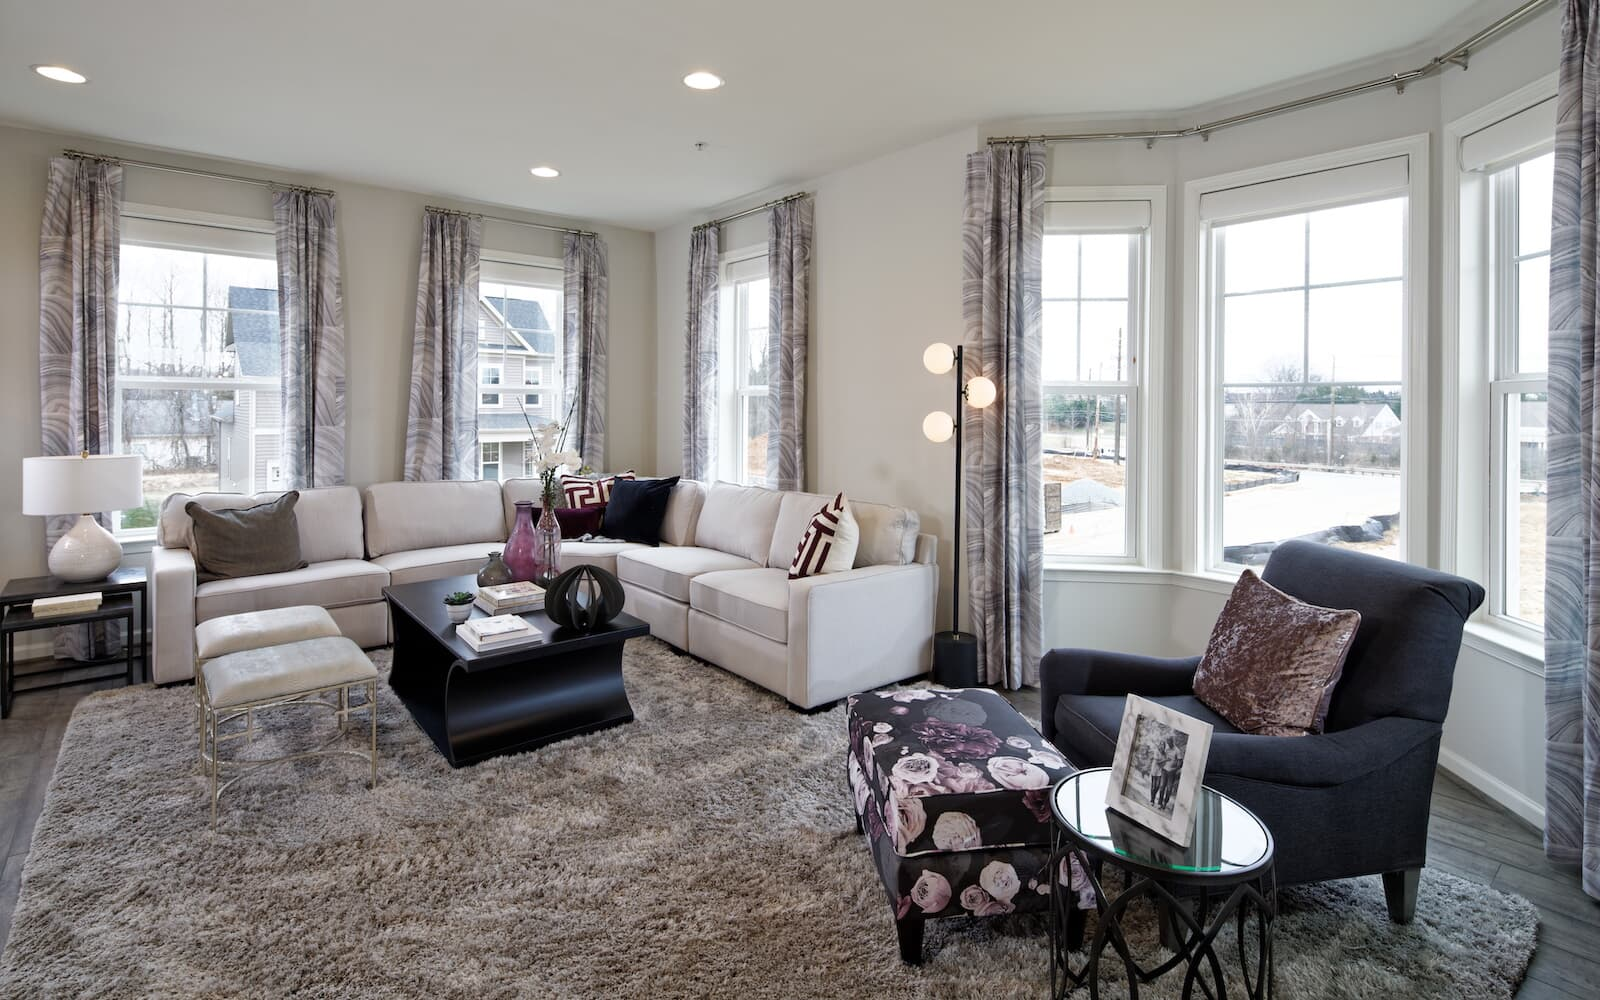 Sequoia-living-room-townhomes-silver-spring-md-bradfords-landing-brookfield-residential